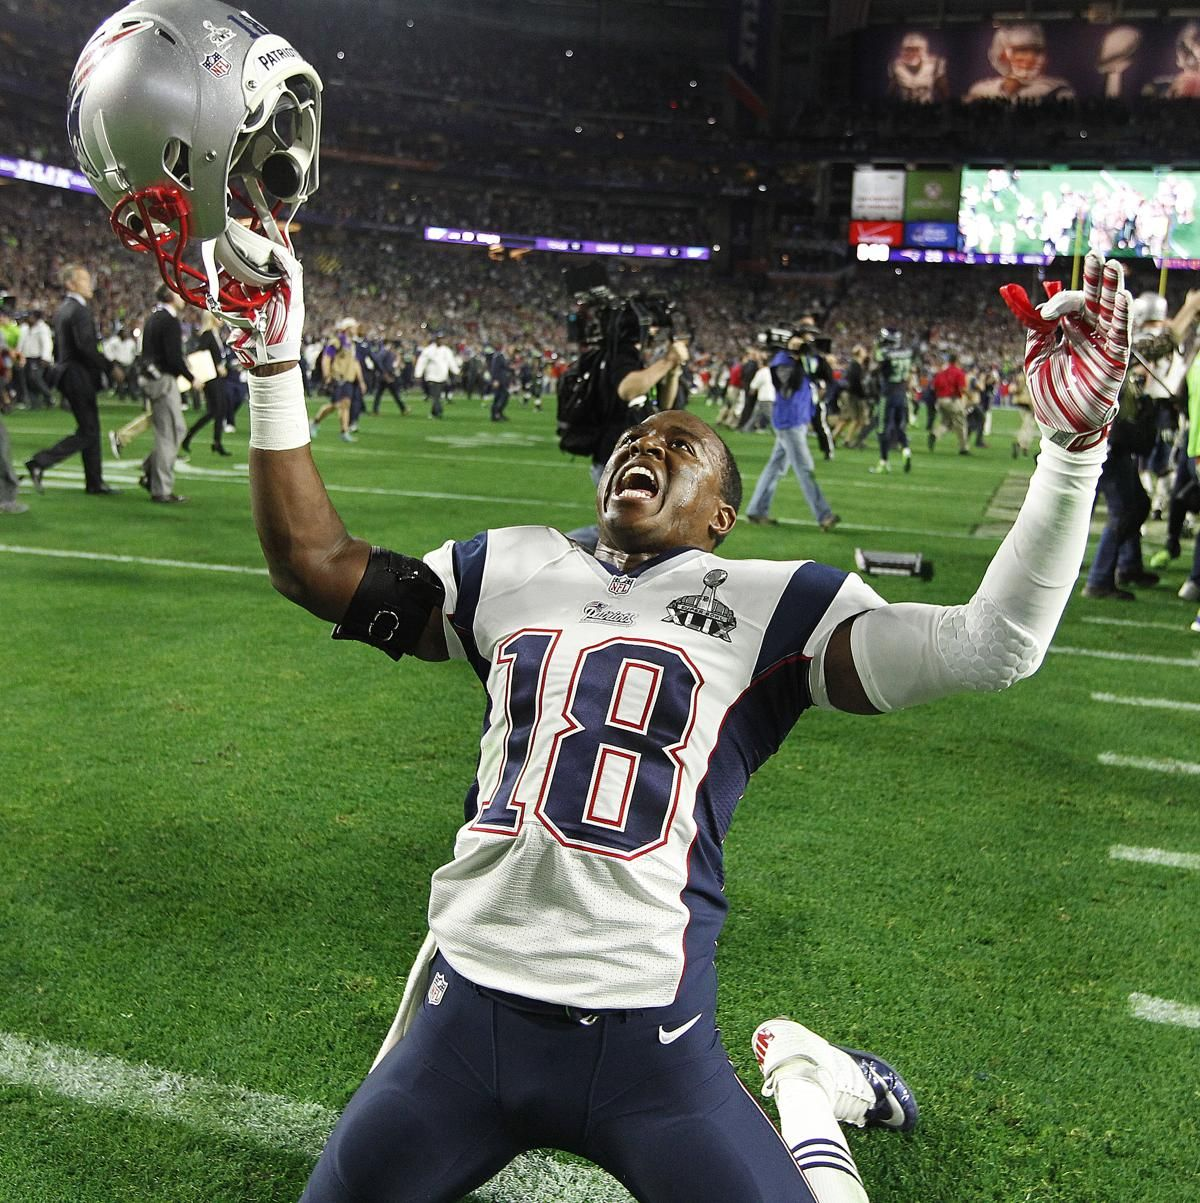 Super Bowl Xlix Patriots Vs Seahawks The Boston Globe Matthew Slater New England Patriots Super Bowl